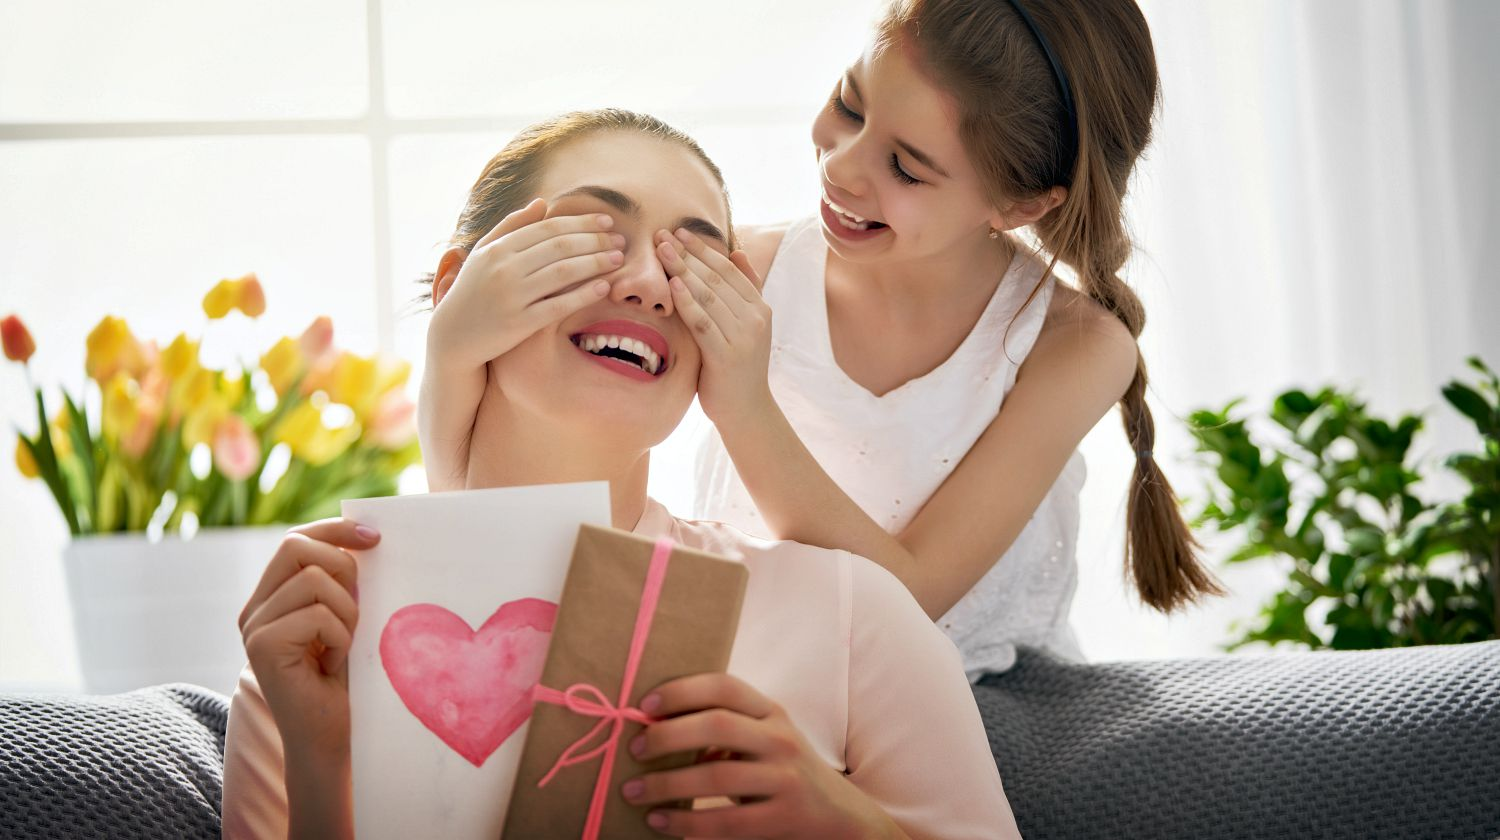 Mother's Day 2020 Ideas in COVID-19 Lockdown